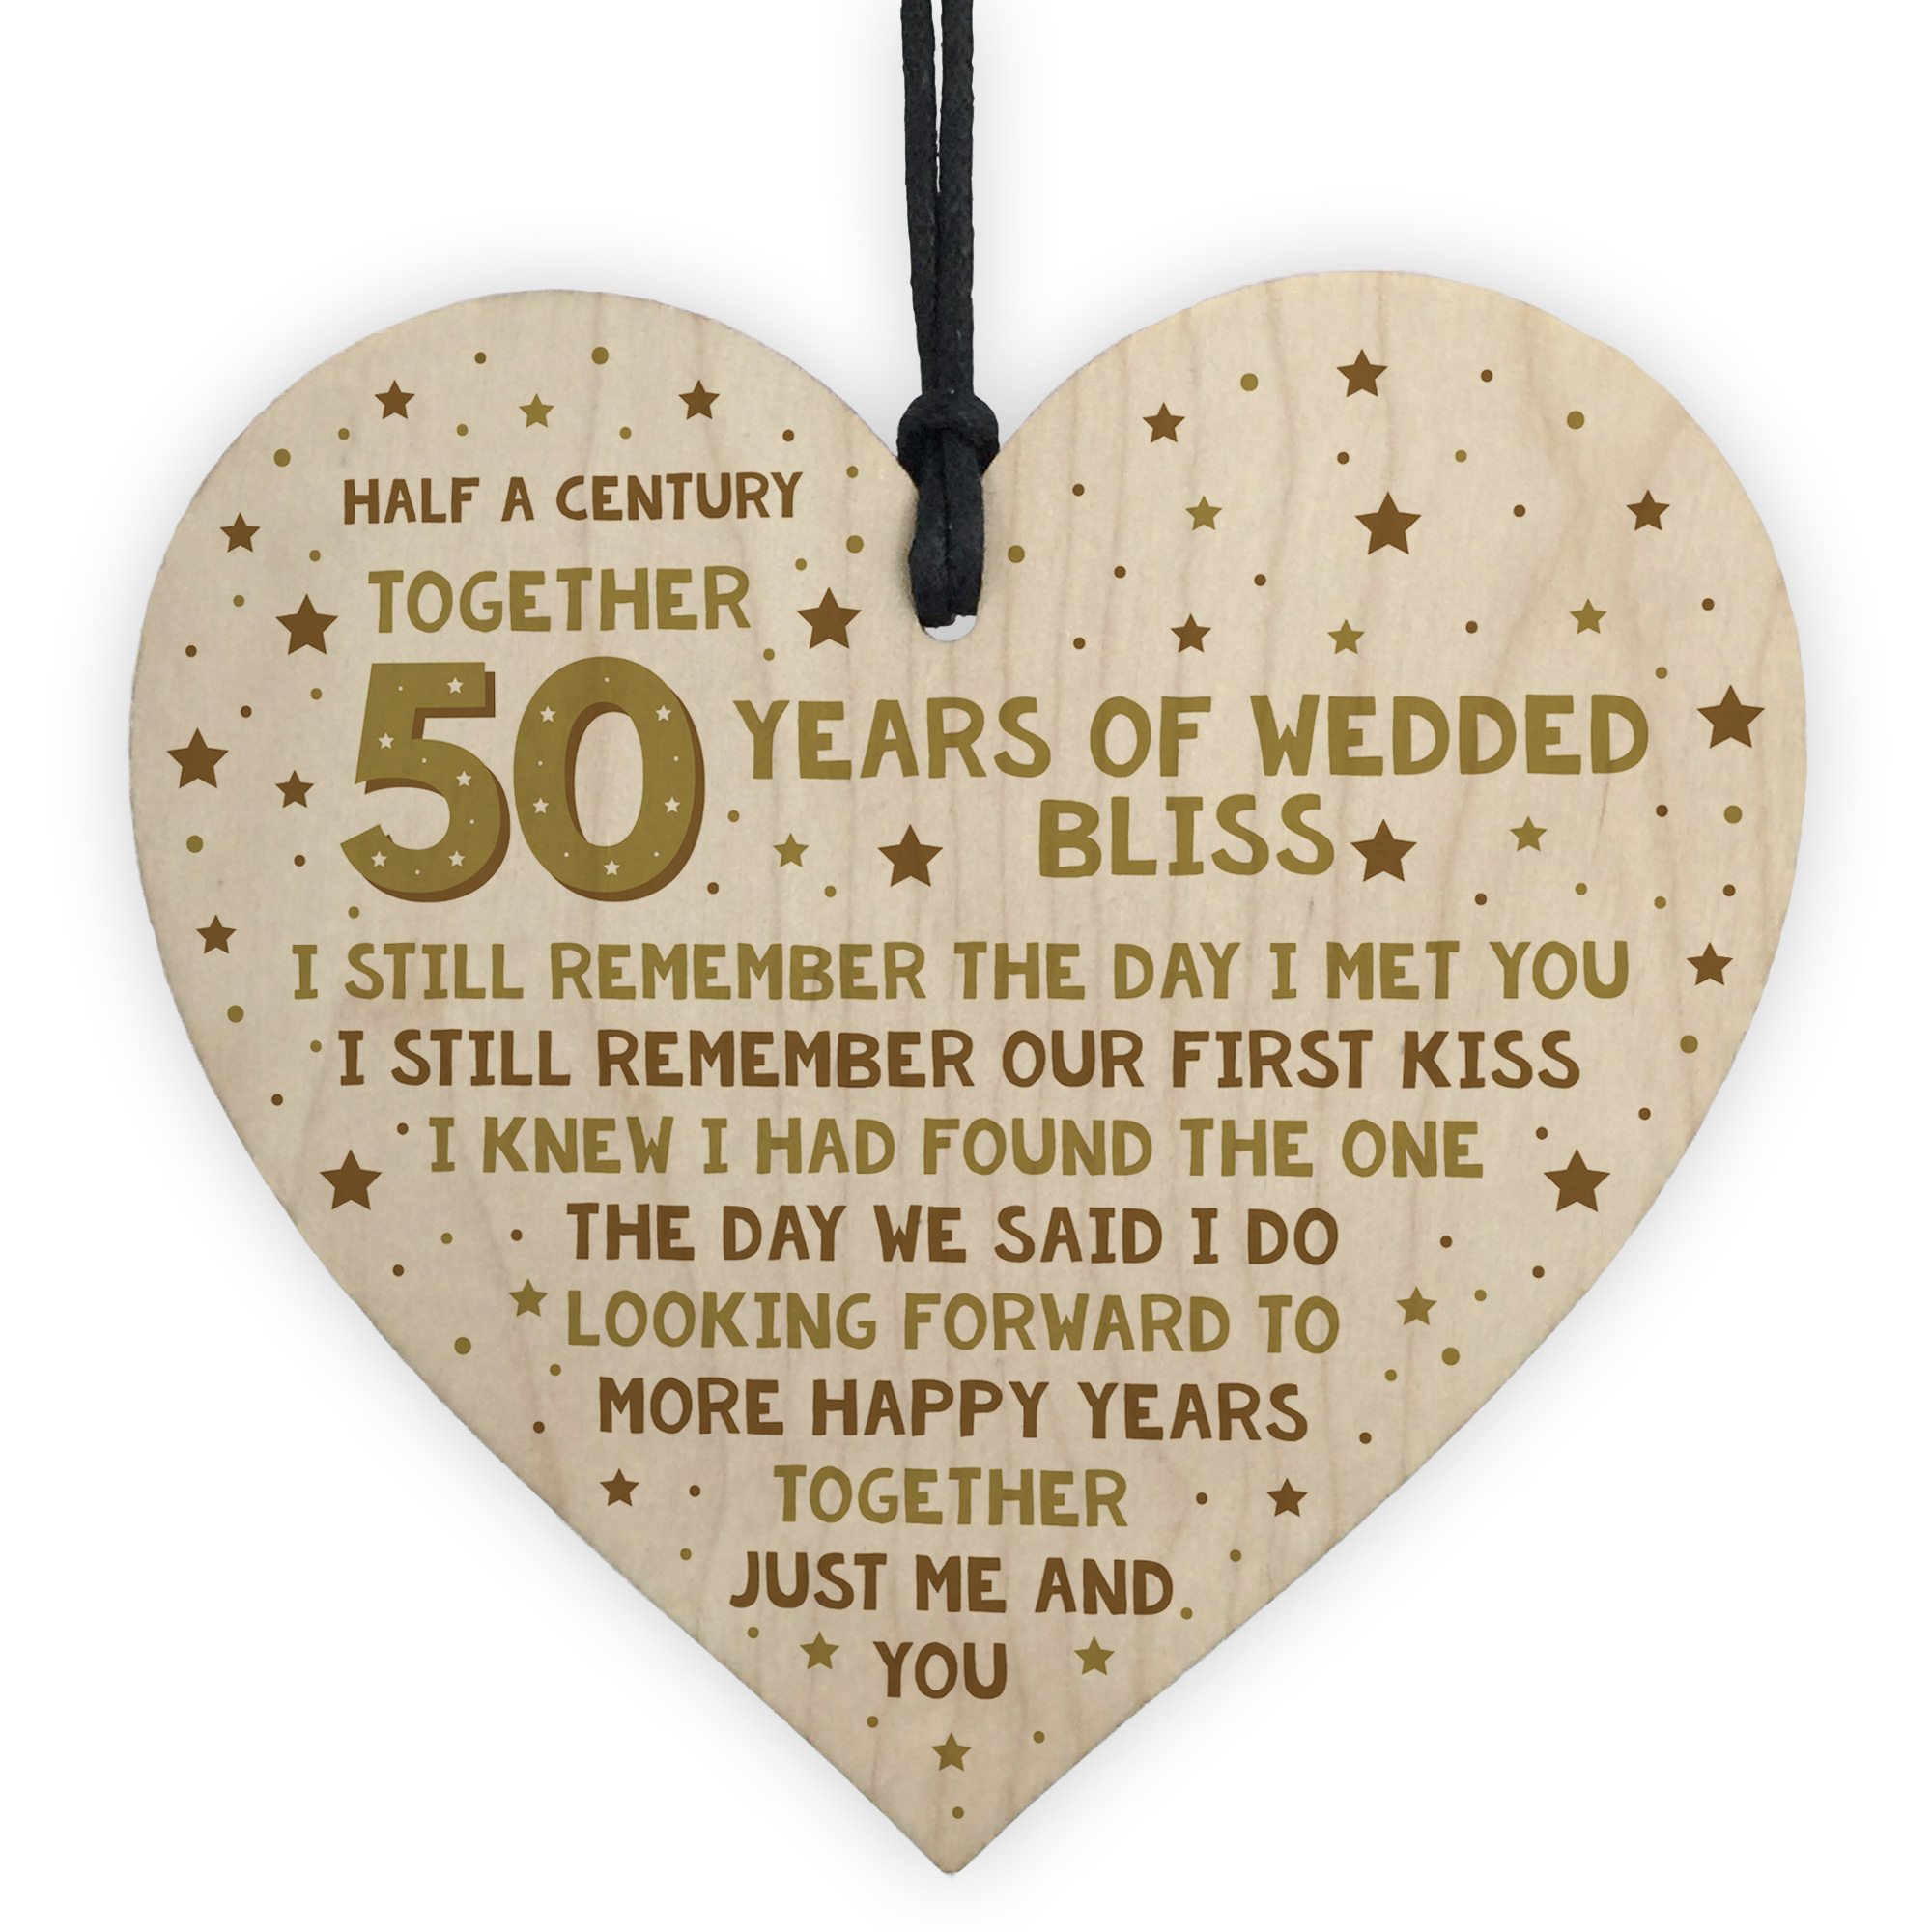 Wedding Anniversary Gifts For Wife: 50th Wedding Anniversary Card Wood Heart Gift For Husband